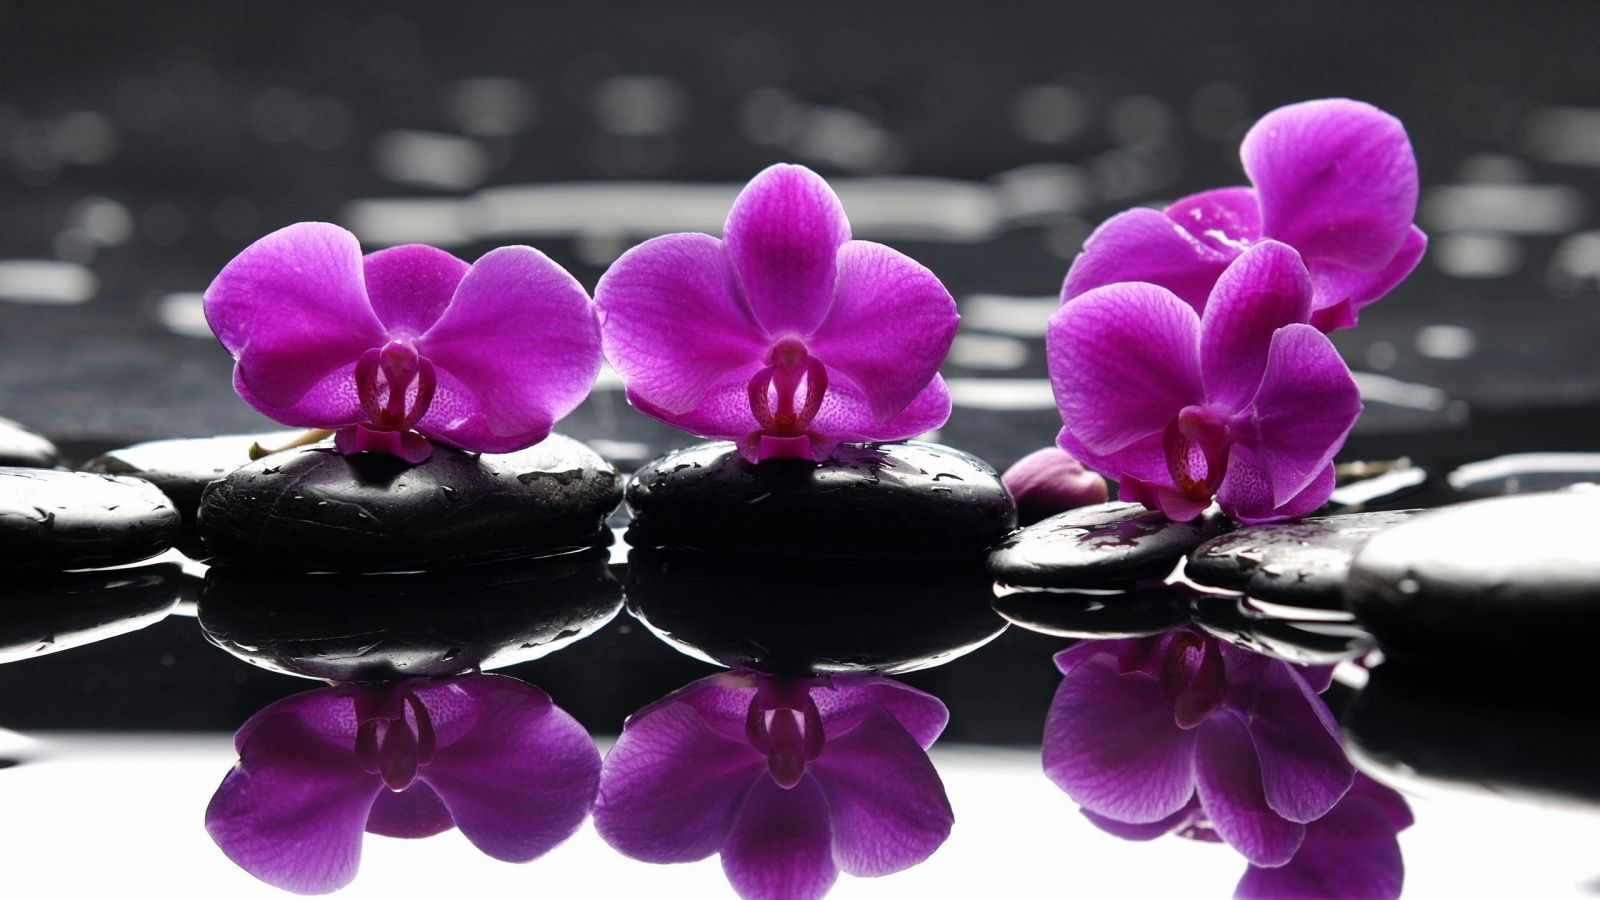 Orchids Reflecting Purple Flowers Wallpaper Orchid Wallpaper Purple Orchids